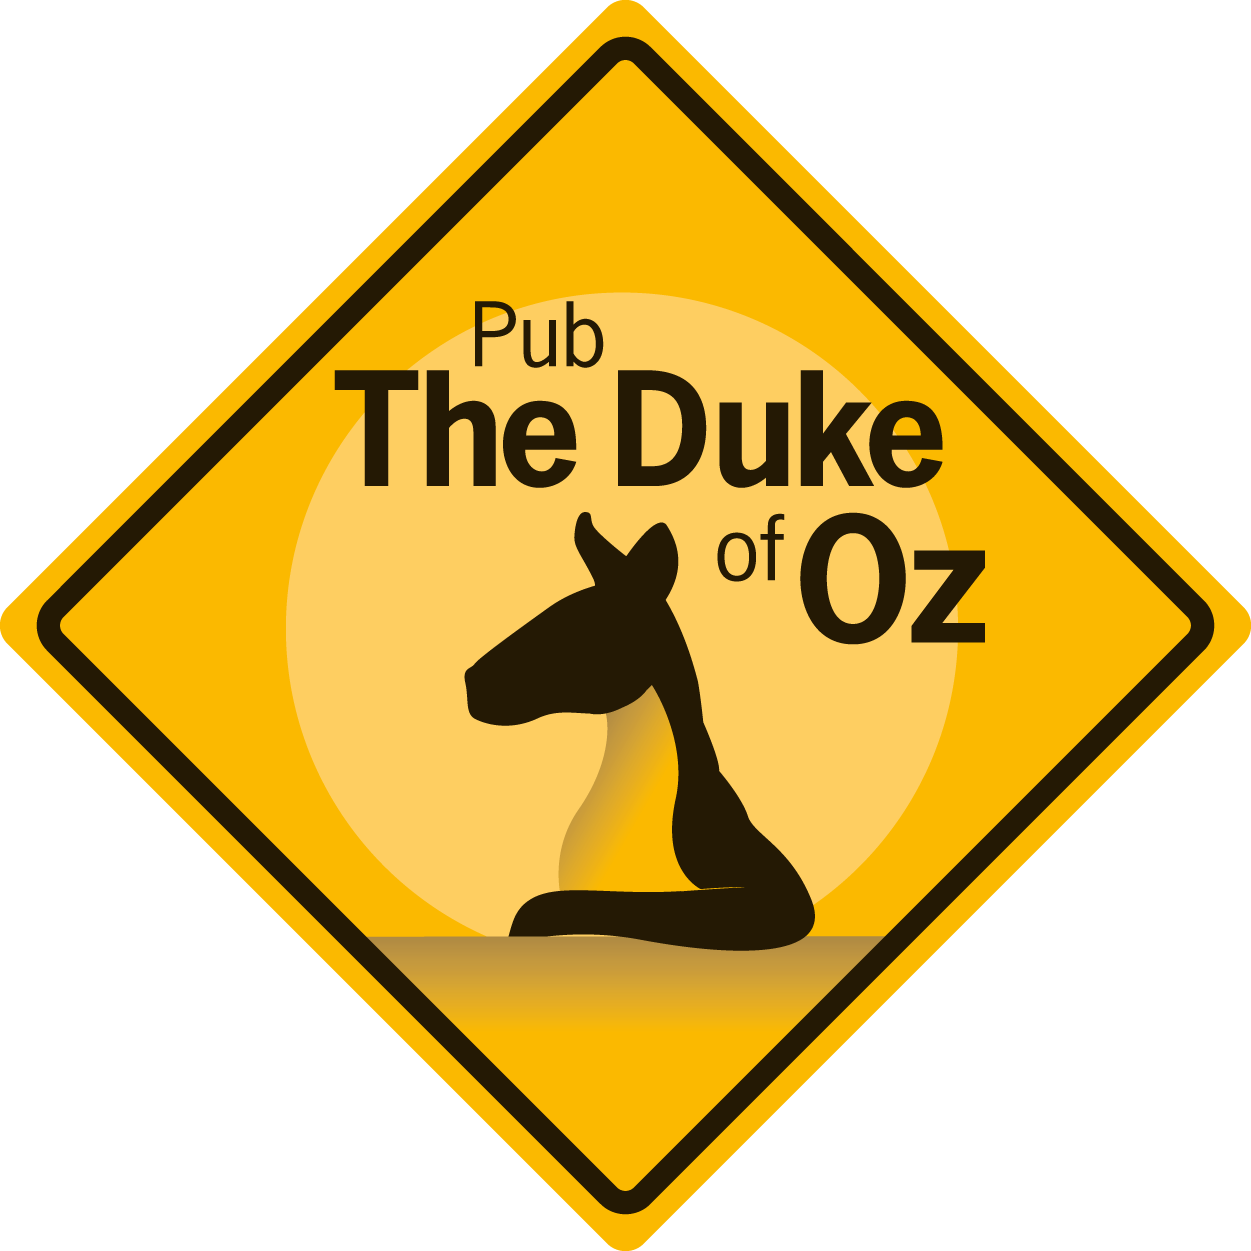 The Duke of Oz